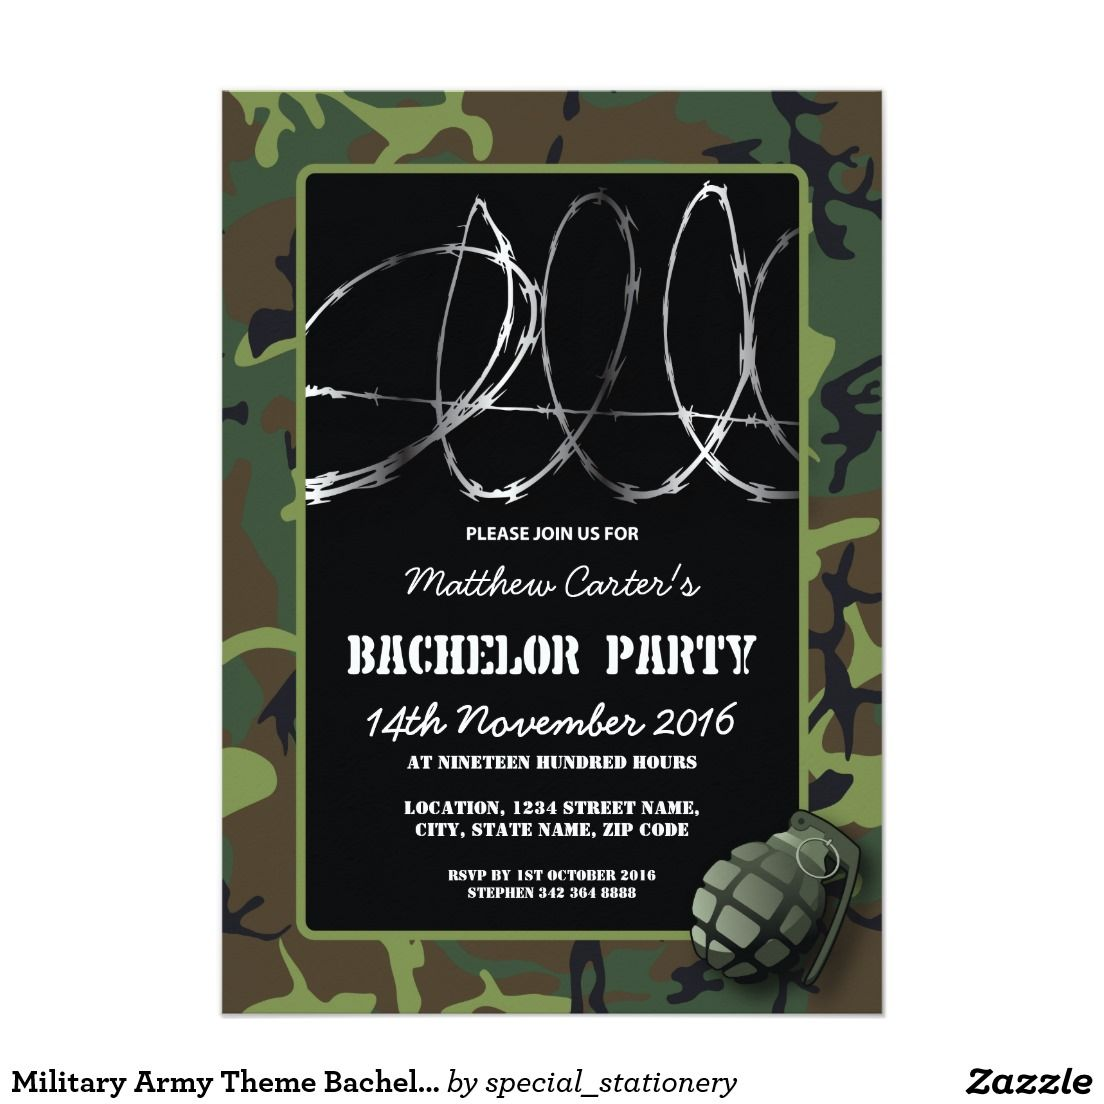 Military army theme bachelor party invitation bachelor party military army theme bachelor party invitation monicamarmolfo Choice Image